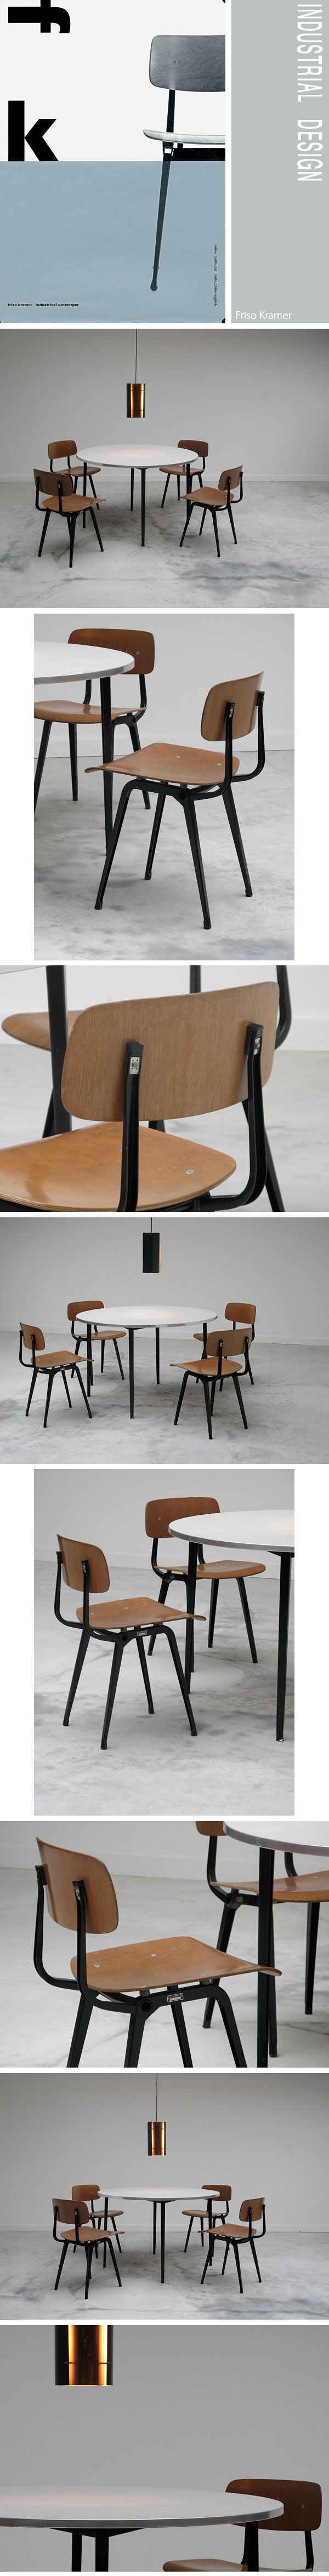 industrial, design, Friso, Kramer, round, table, chairs, 1960s, dutch